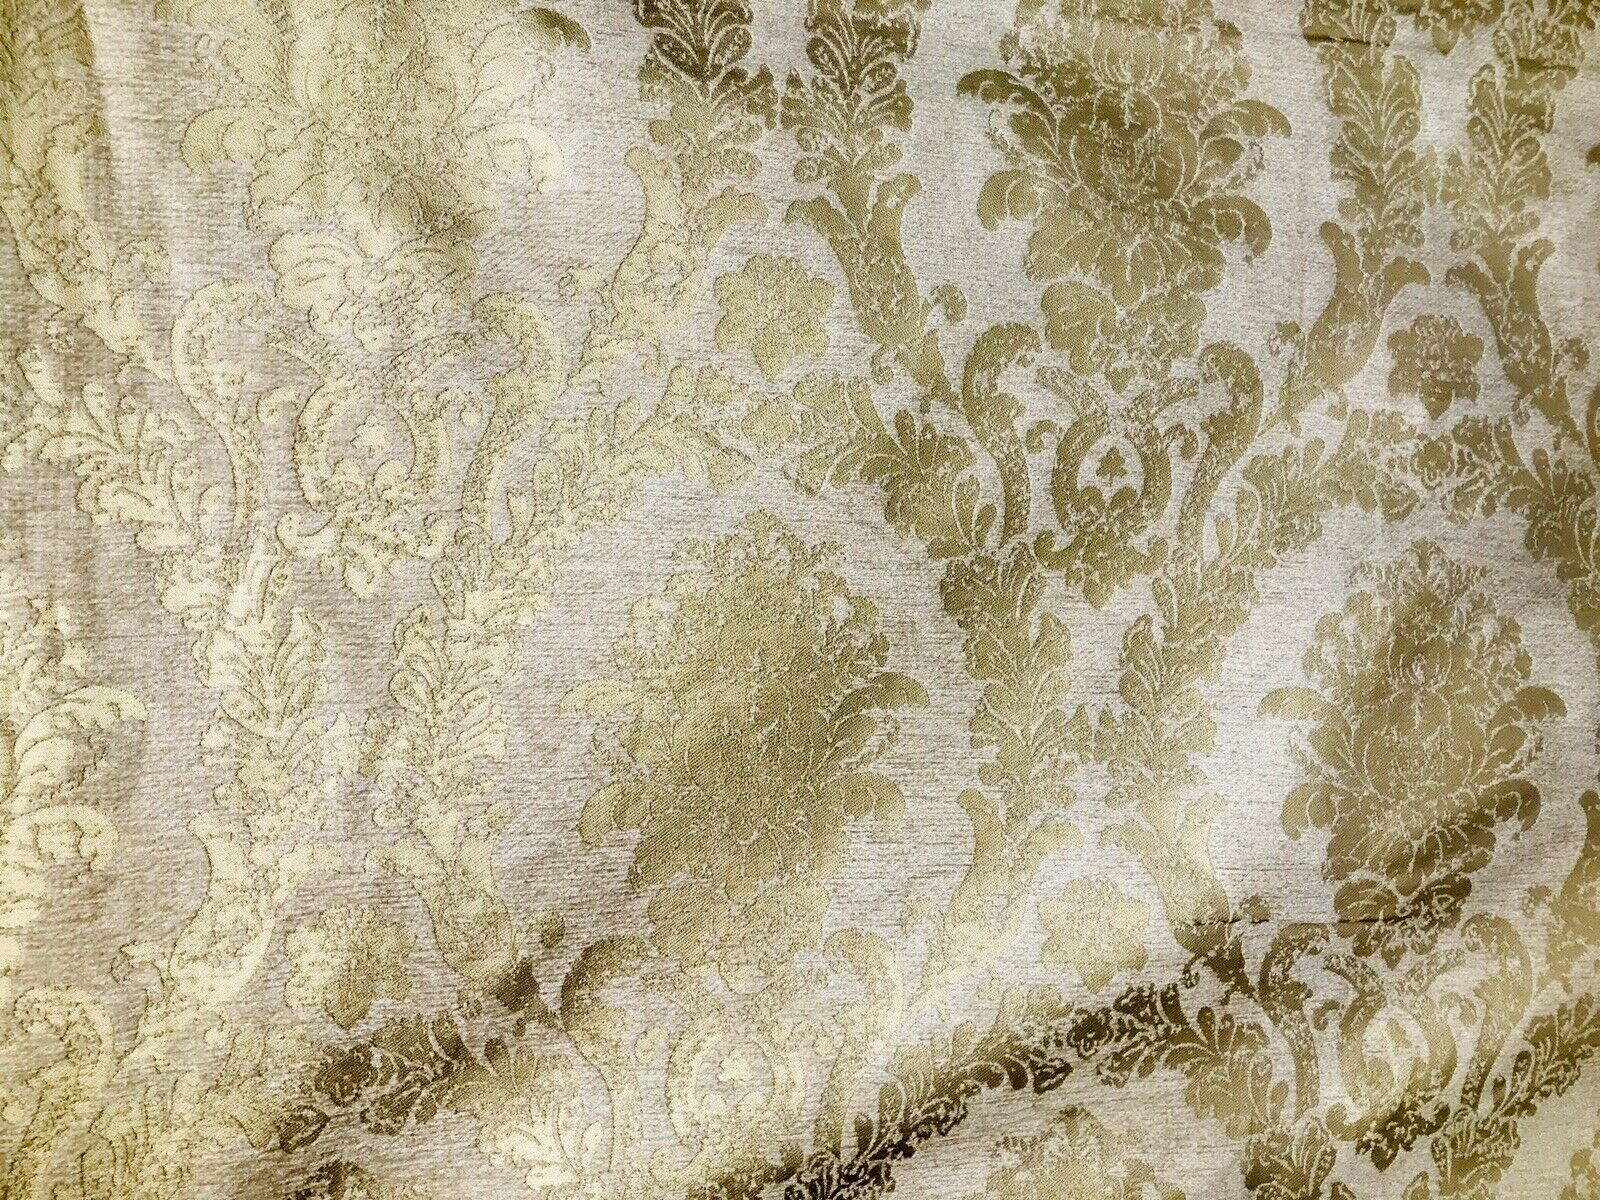 Designer Velvet Chenille Burnout Damask Upholstery Fabric - Cream & Gold